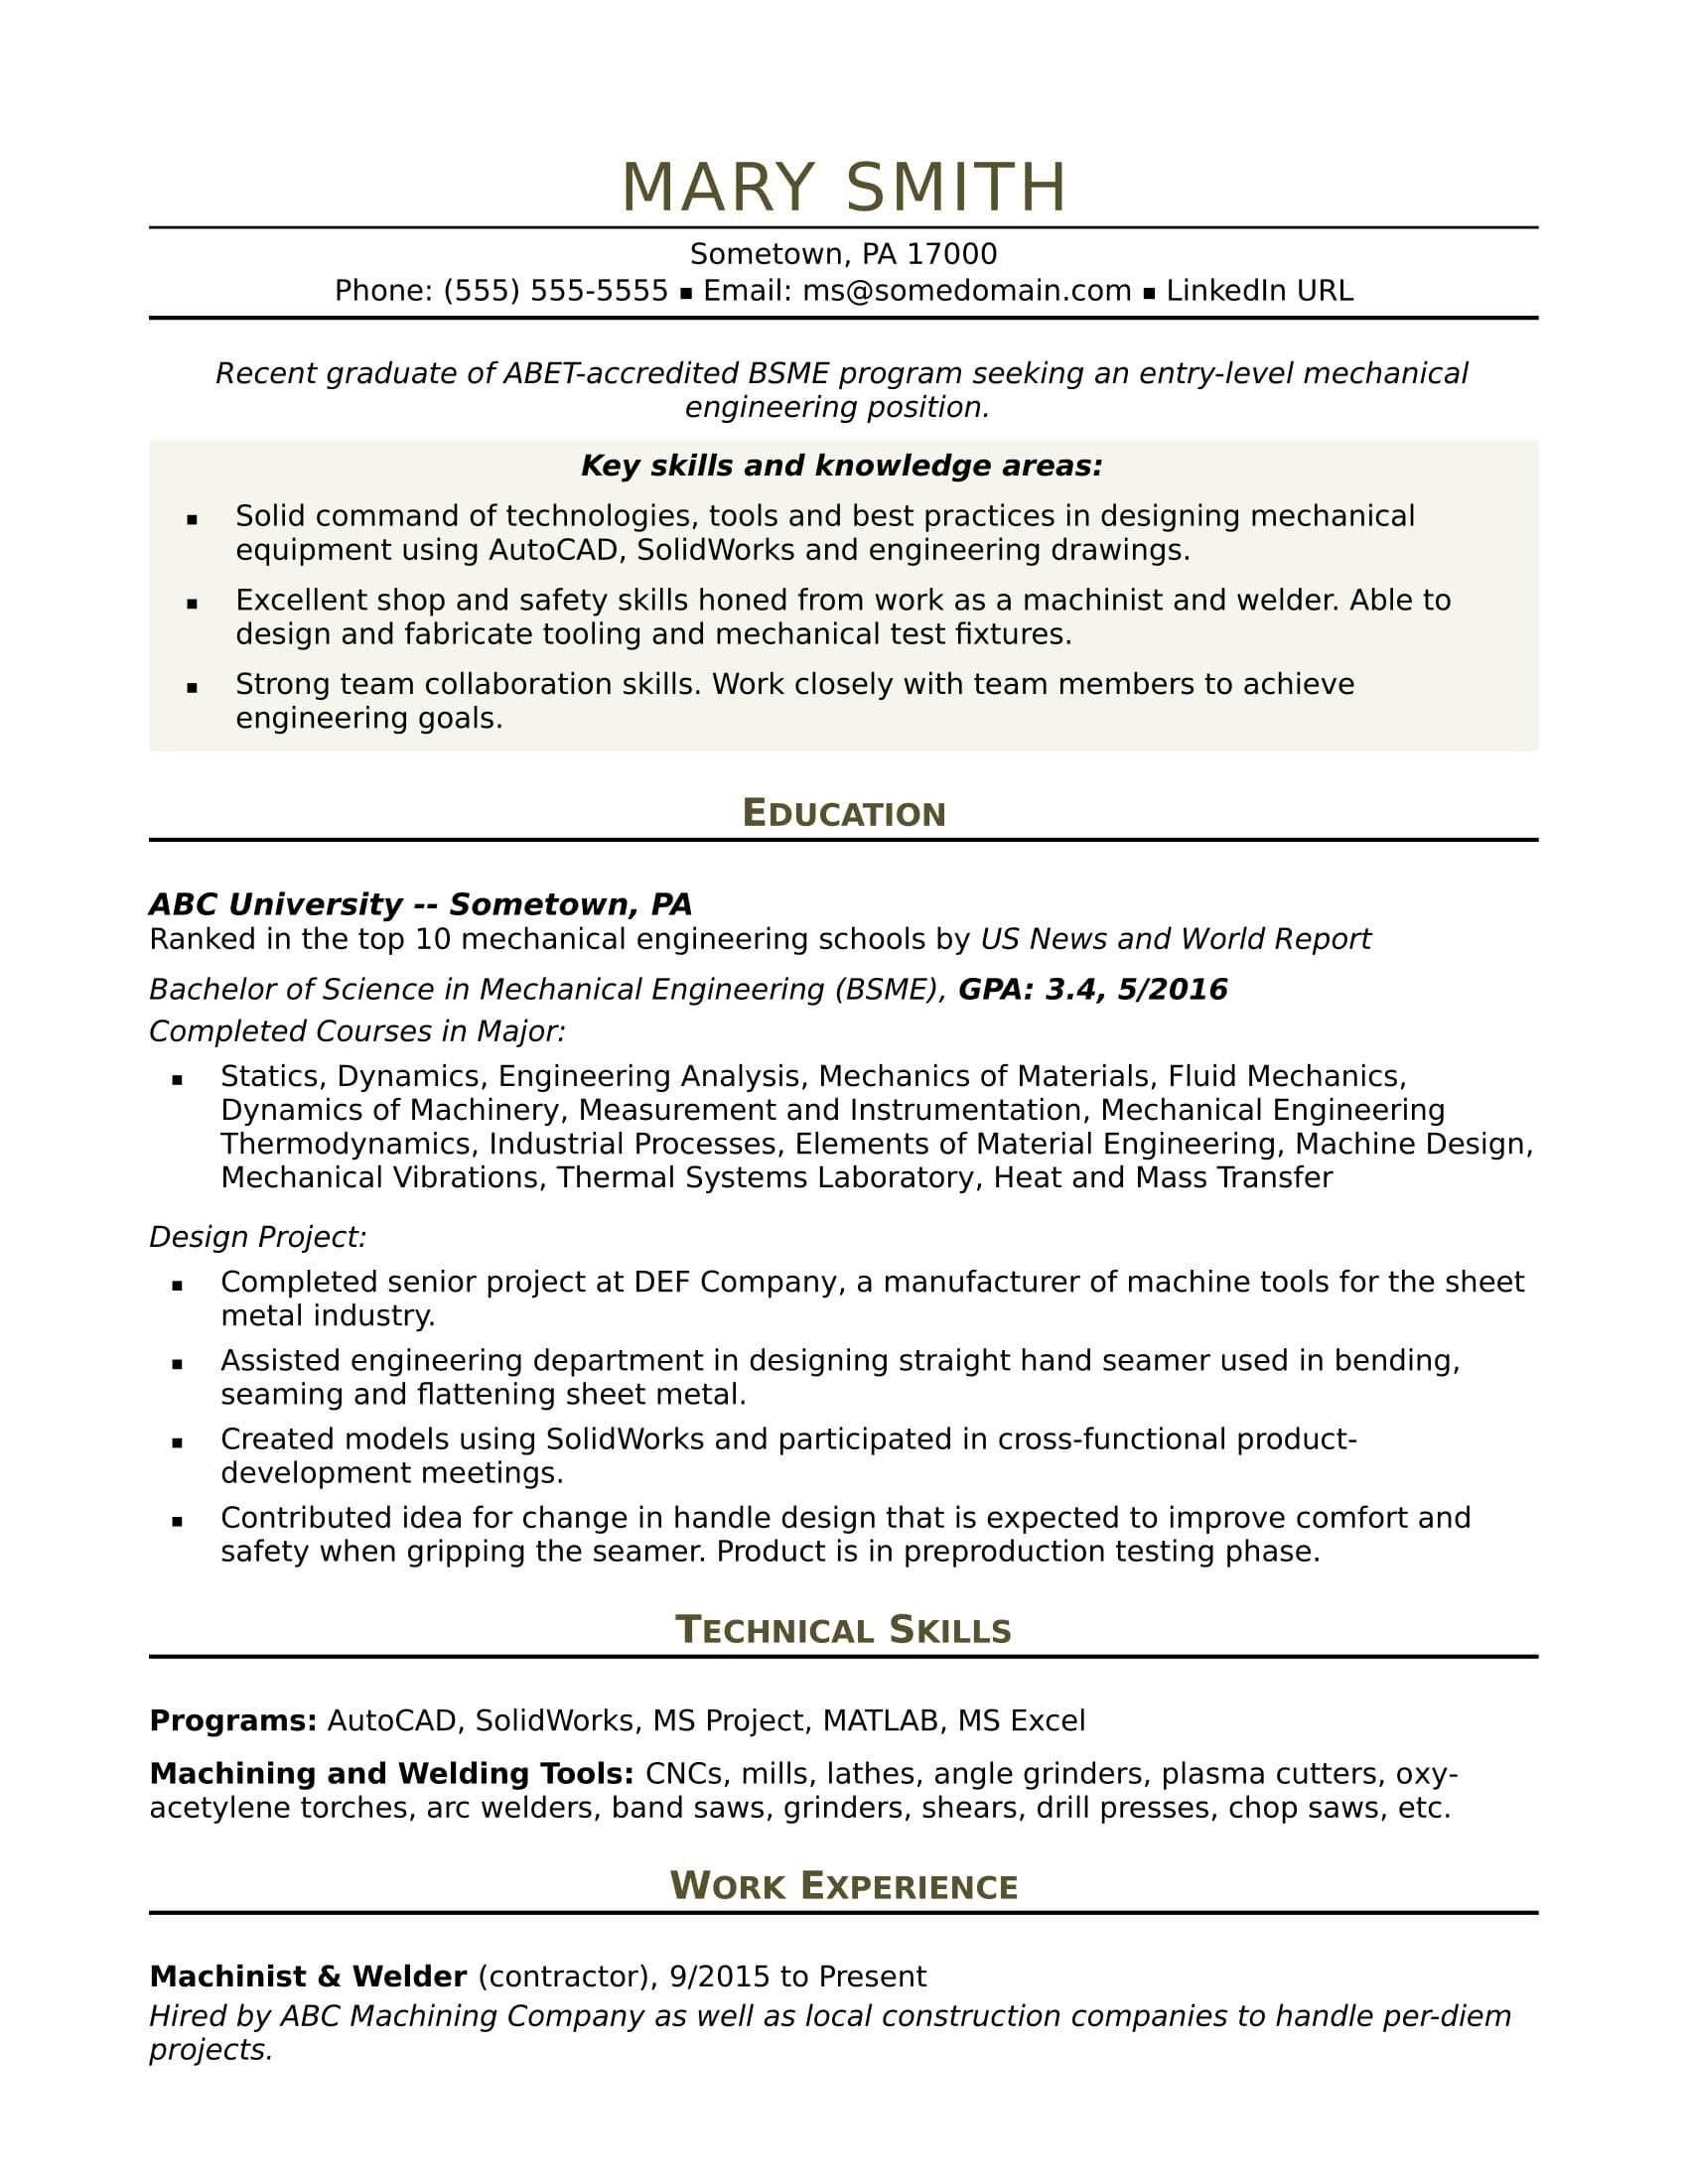 Systems Engineer Resume Examples Resume Examples Mechanical Engineer  Cv And Resume Examples  Pinterest